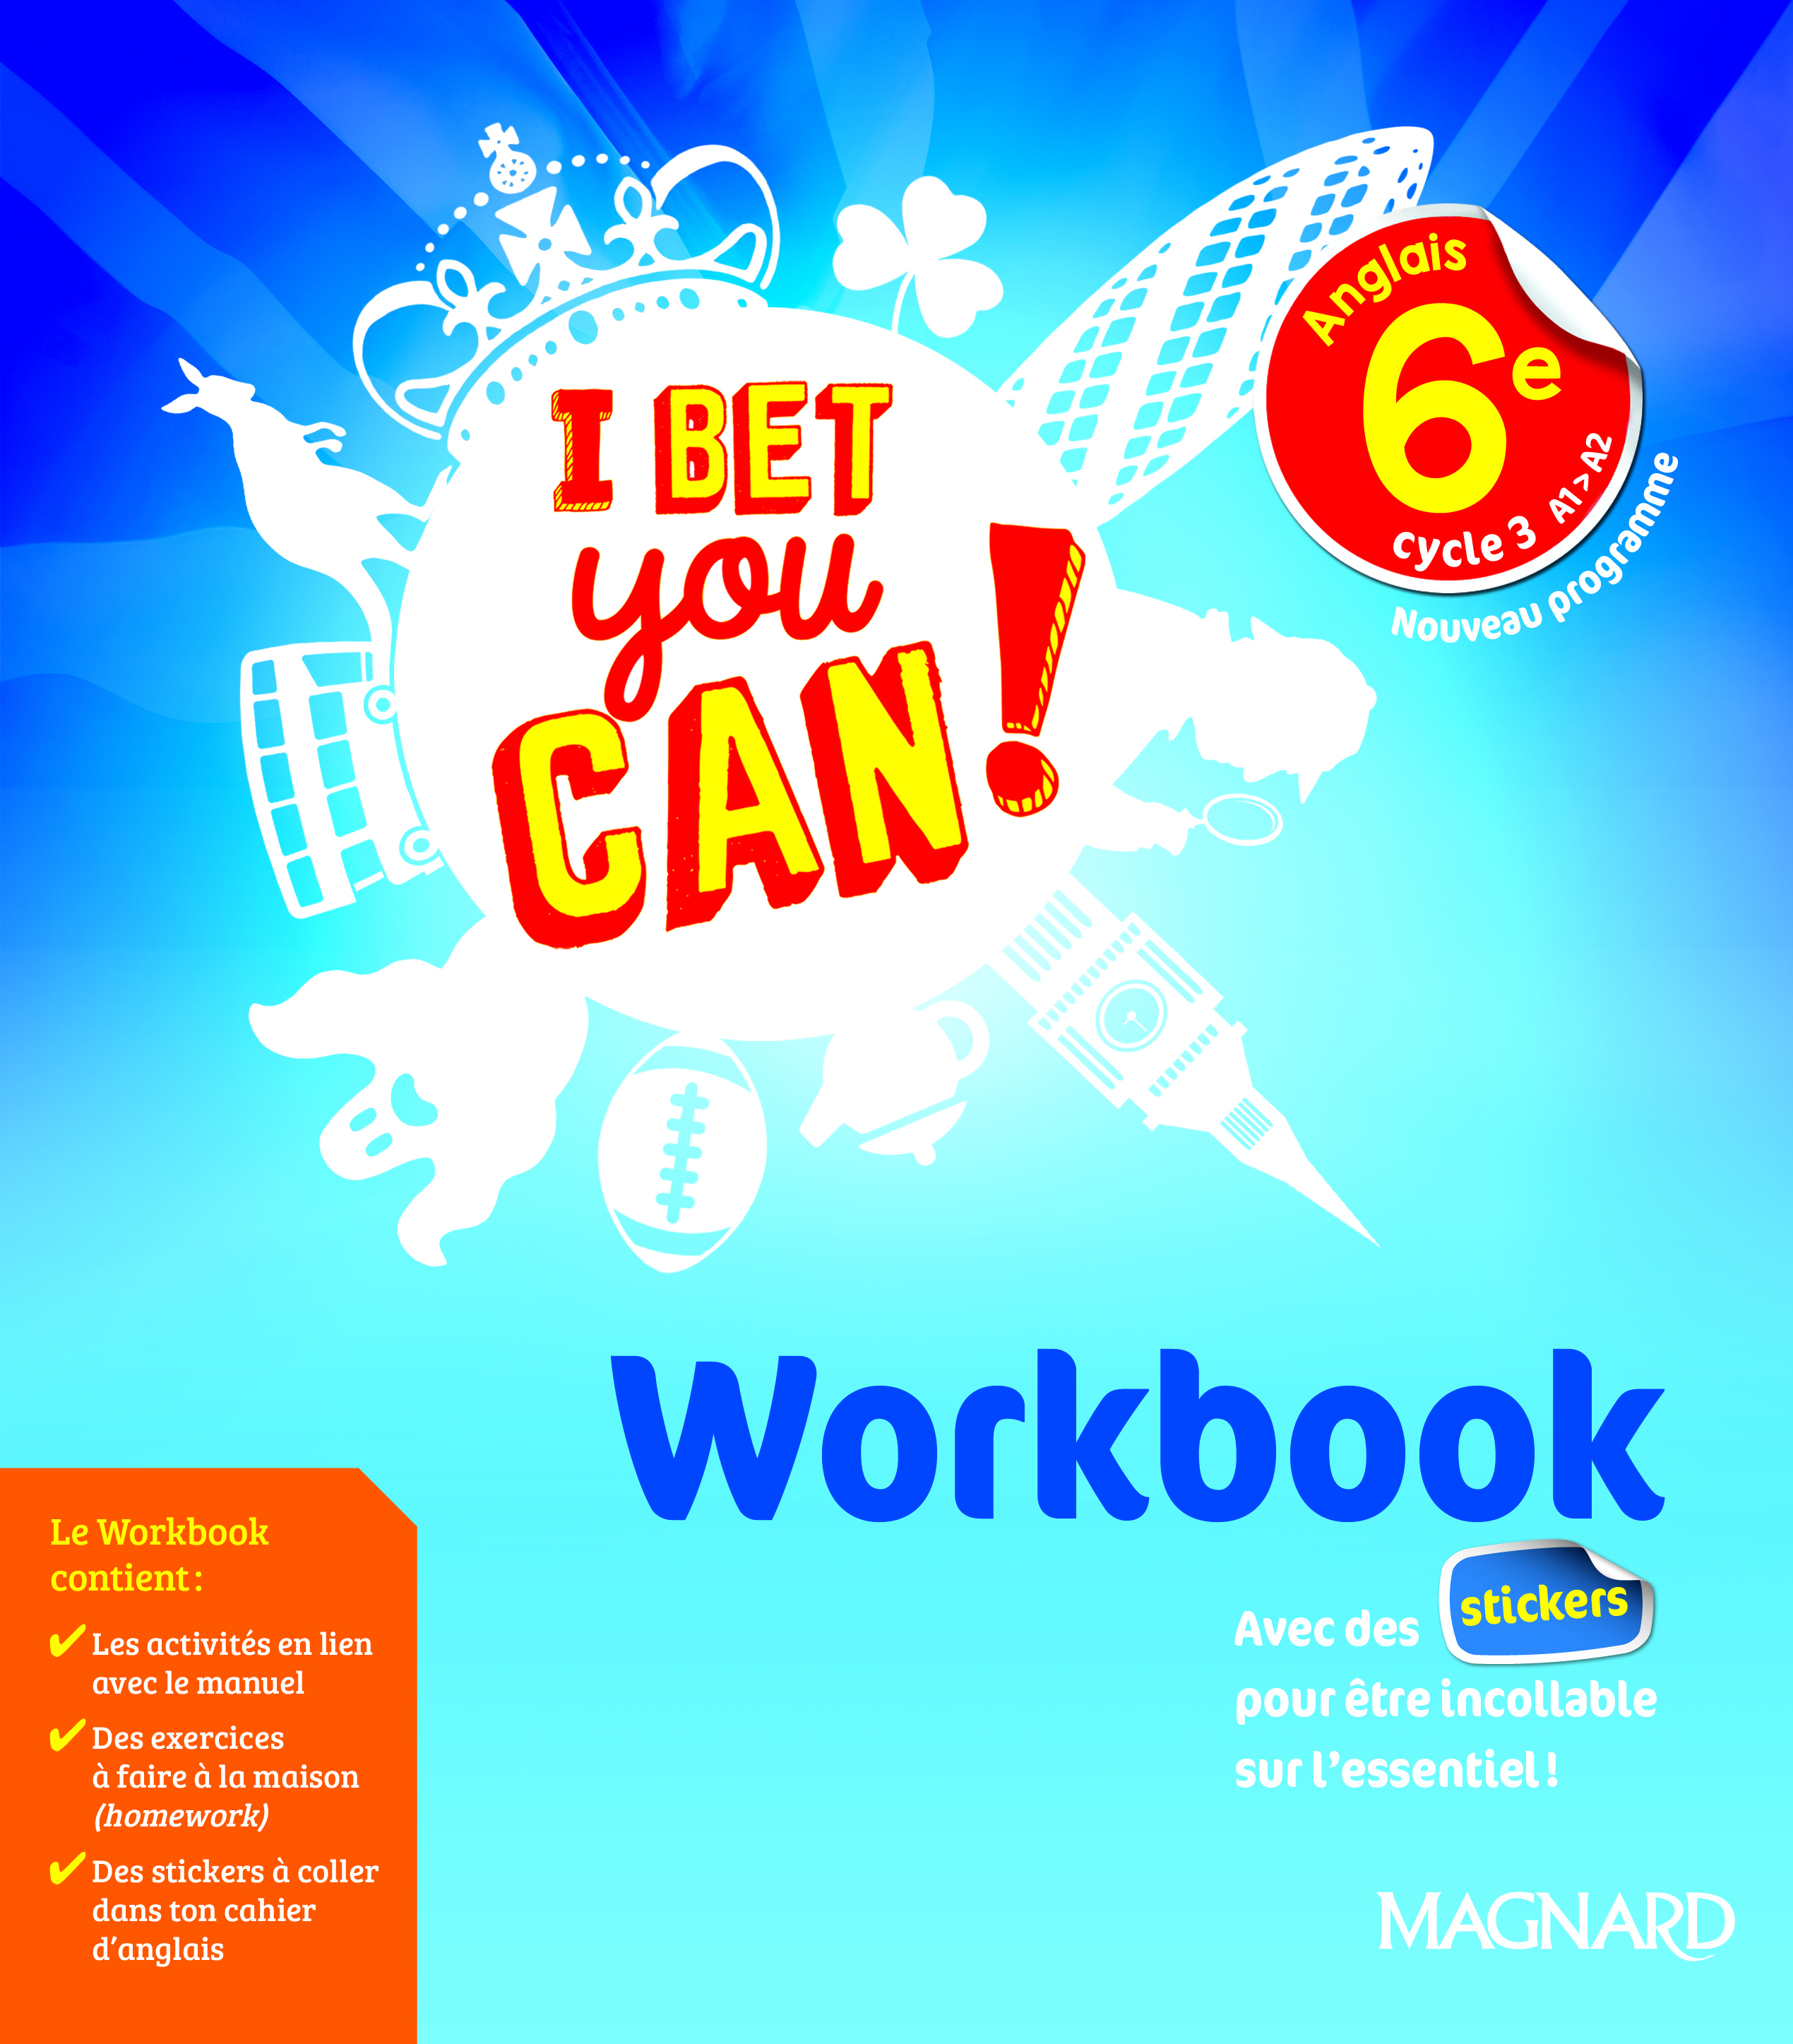 2017 I BET YOU CAN WORKBOOK 6E